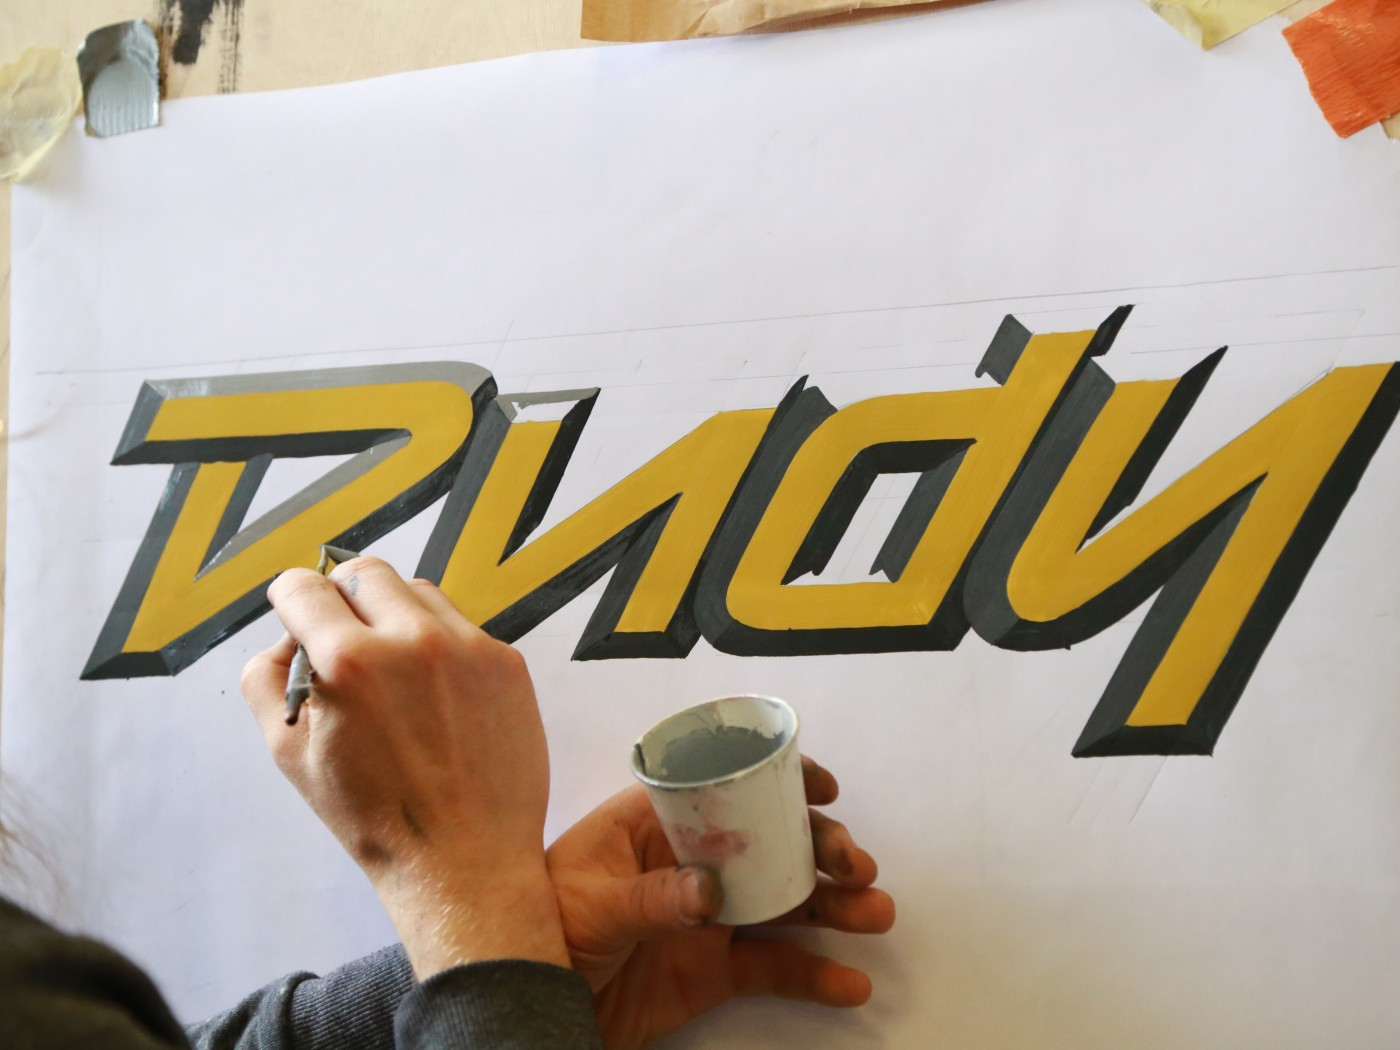 rudy walldog signpainter